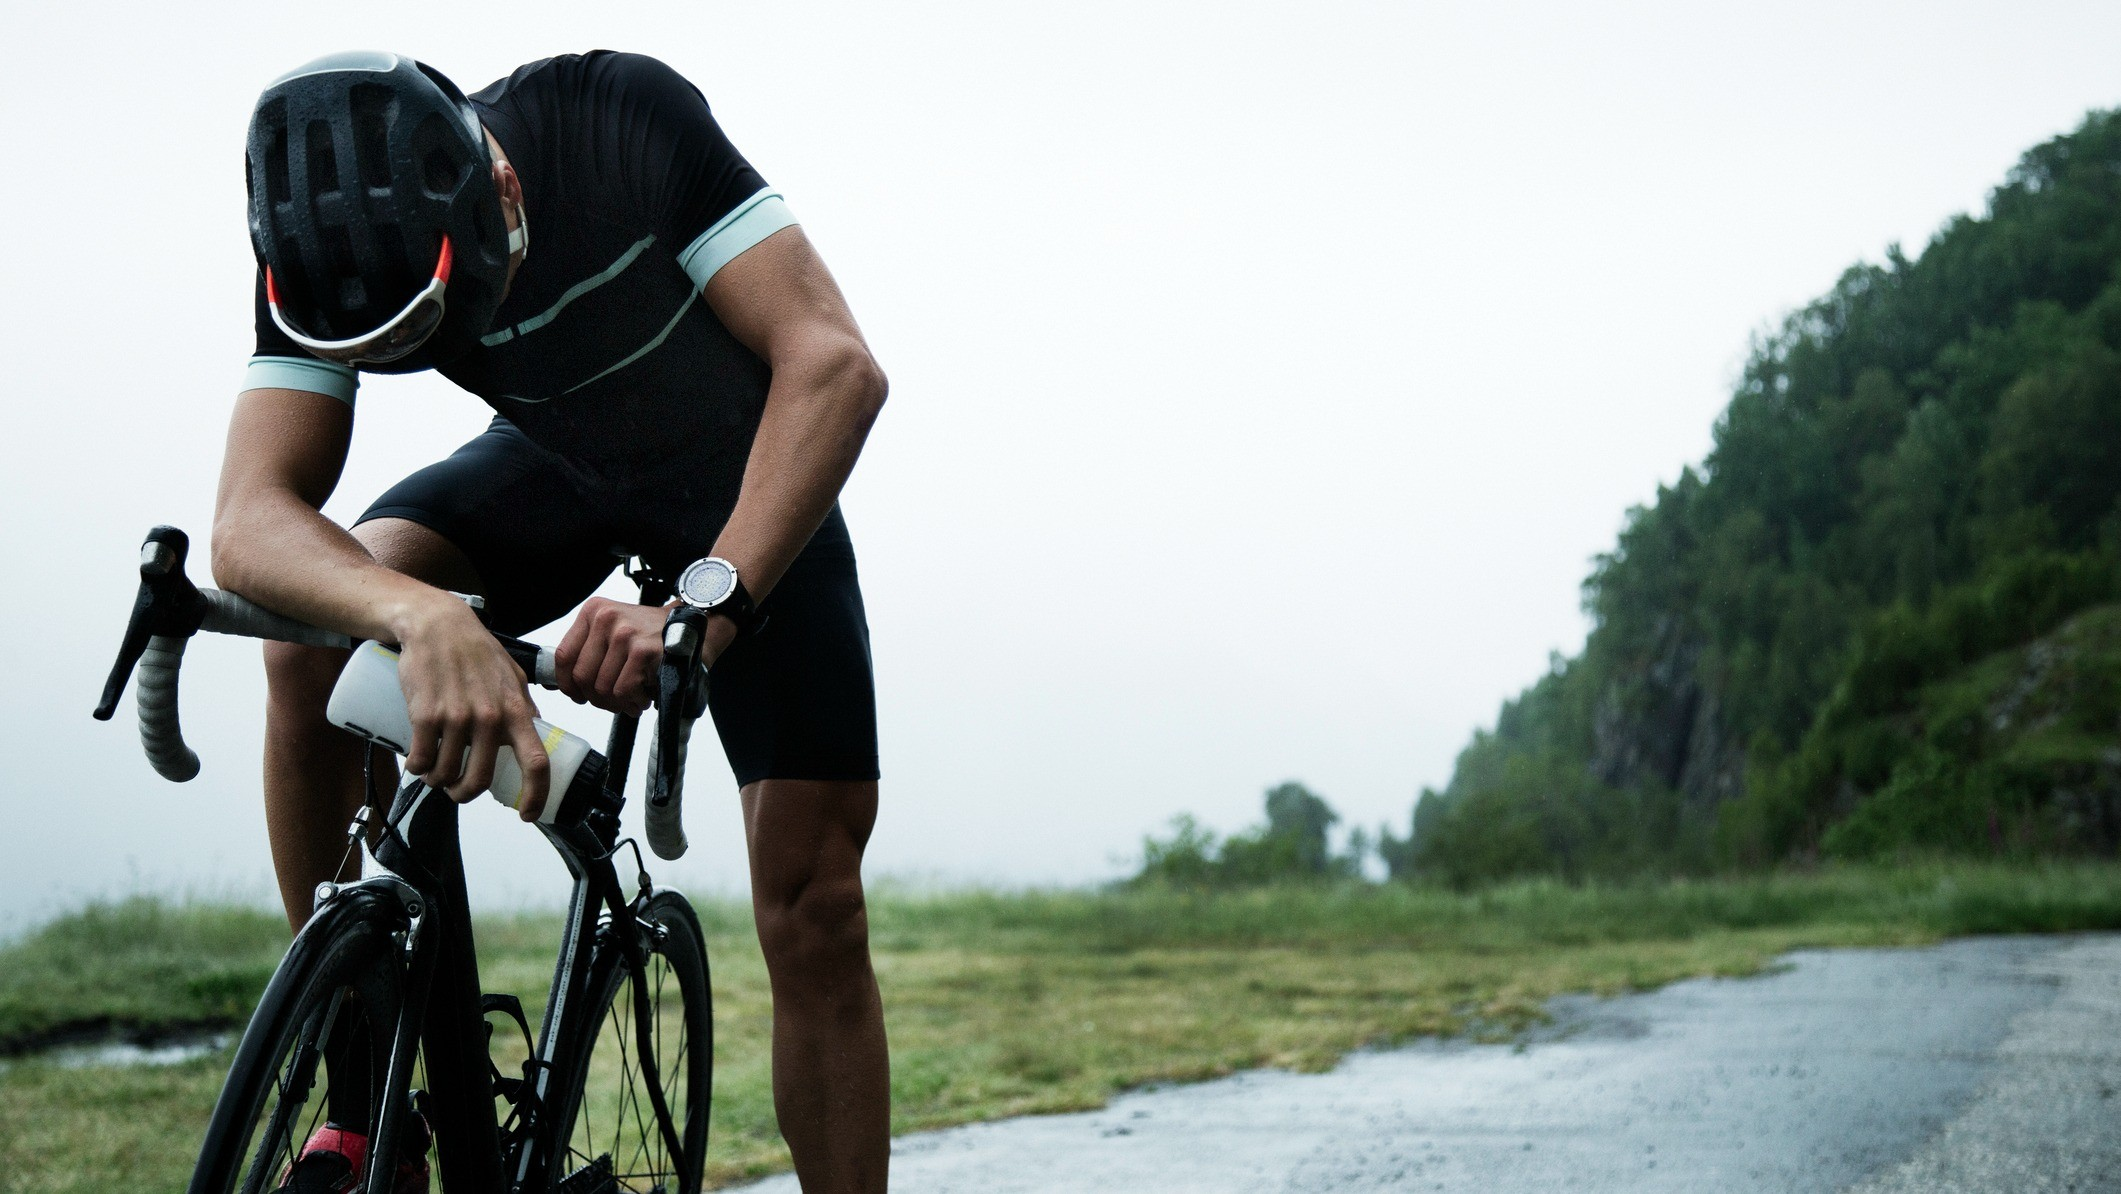 Changes in training patterns are one of the most common causes of knee pain for cyclists